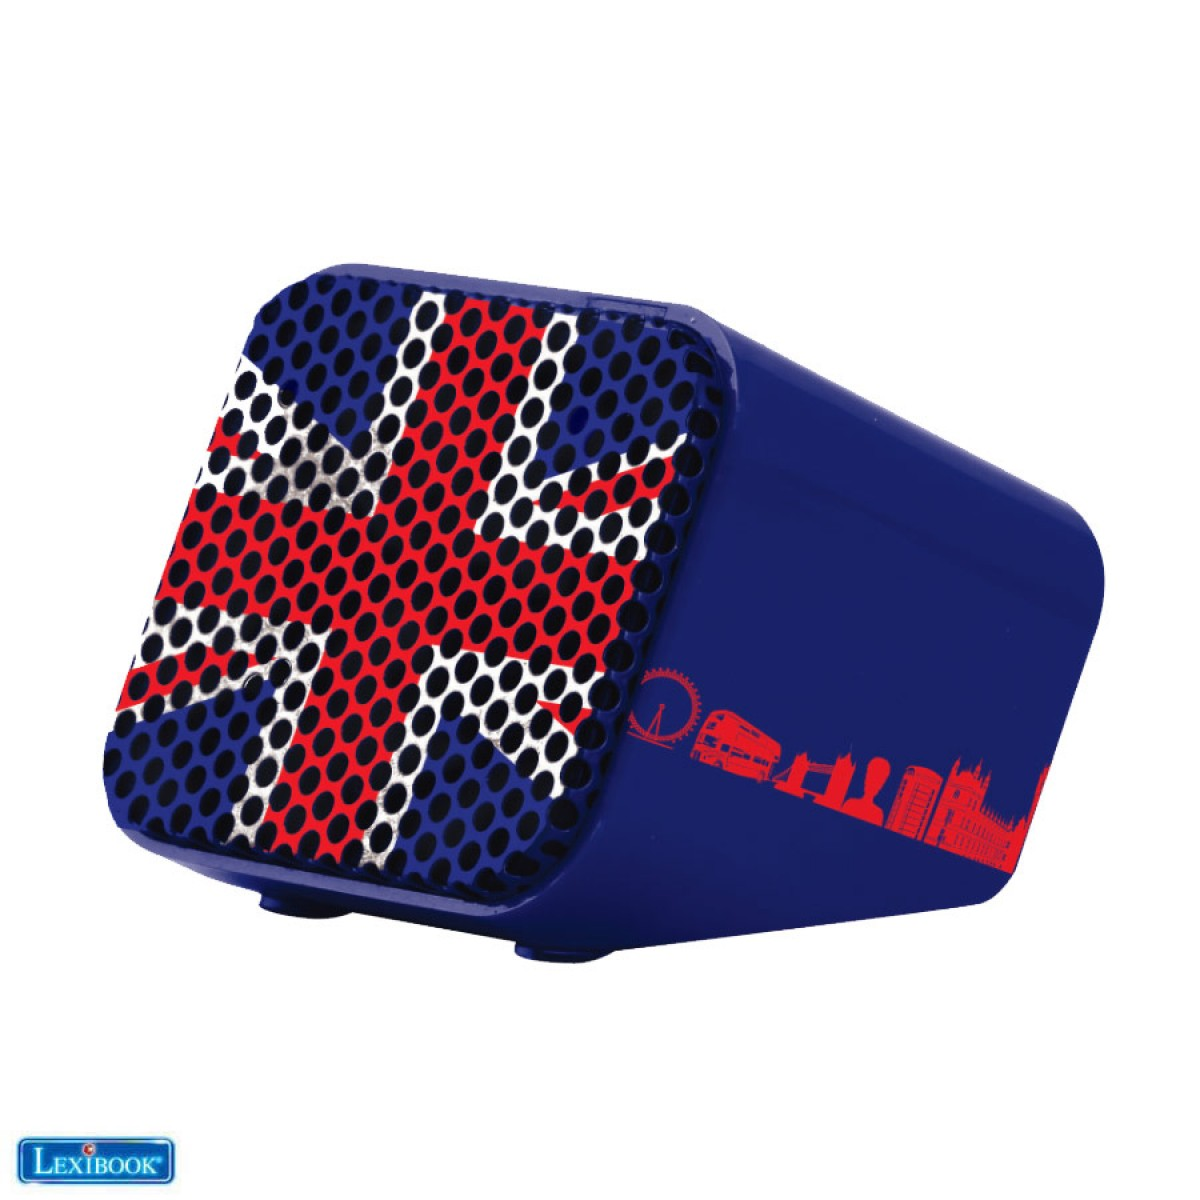 BT011UK - Mini enceinte bluetooth UK